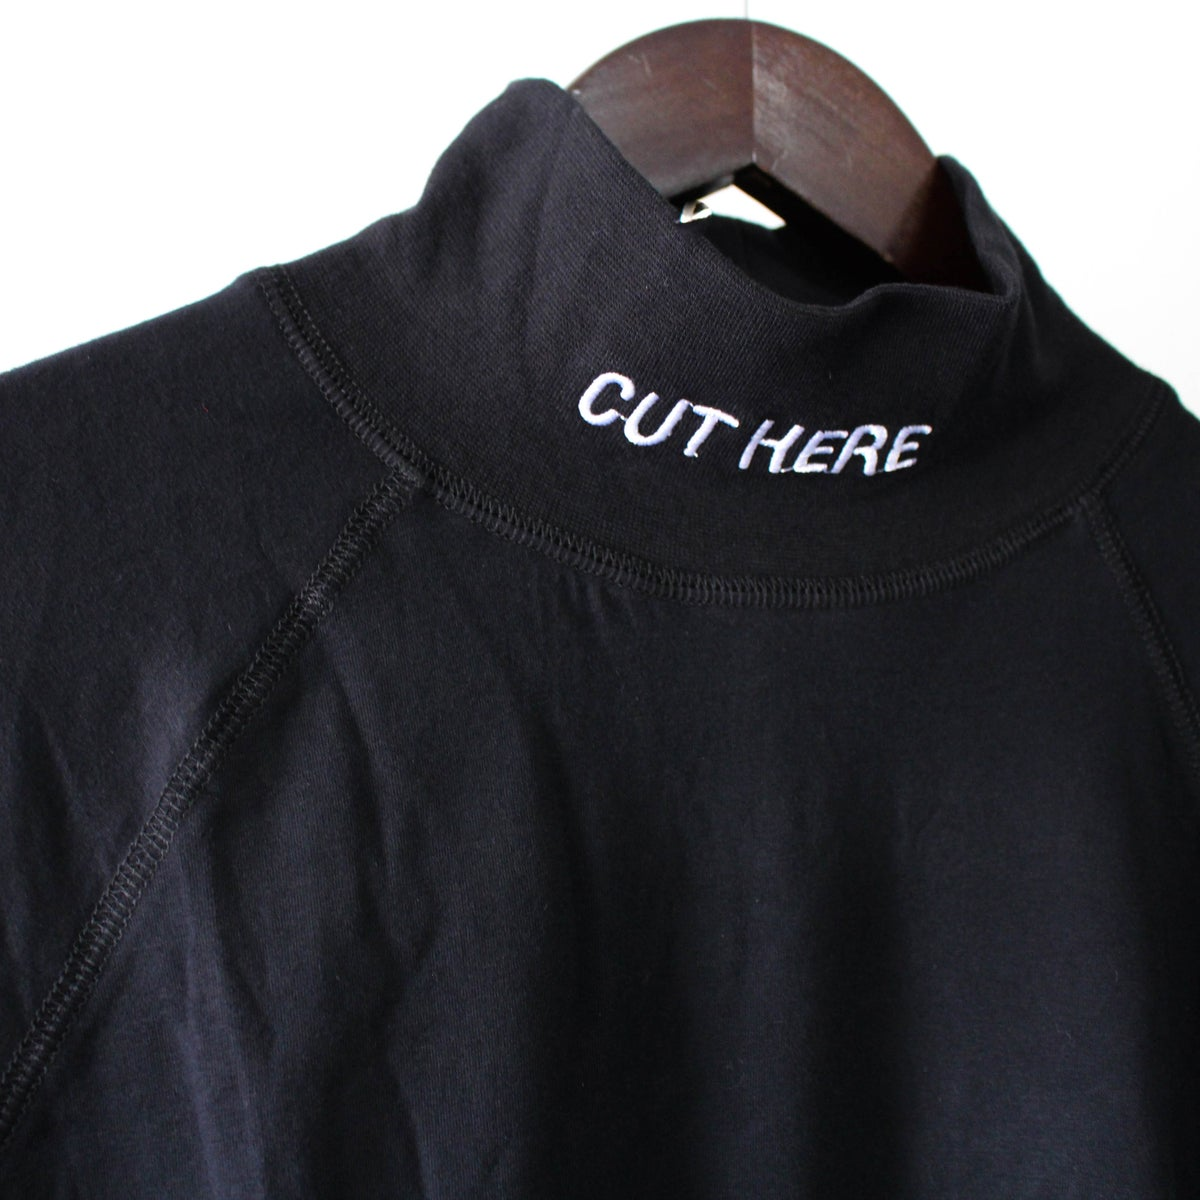 Image of Cut here Mock Turtleneck [PREORDER]